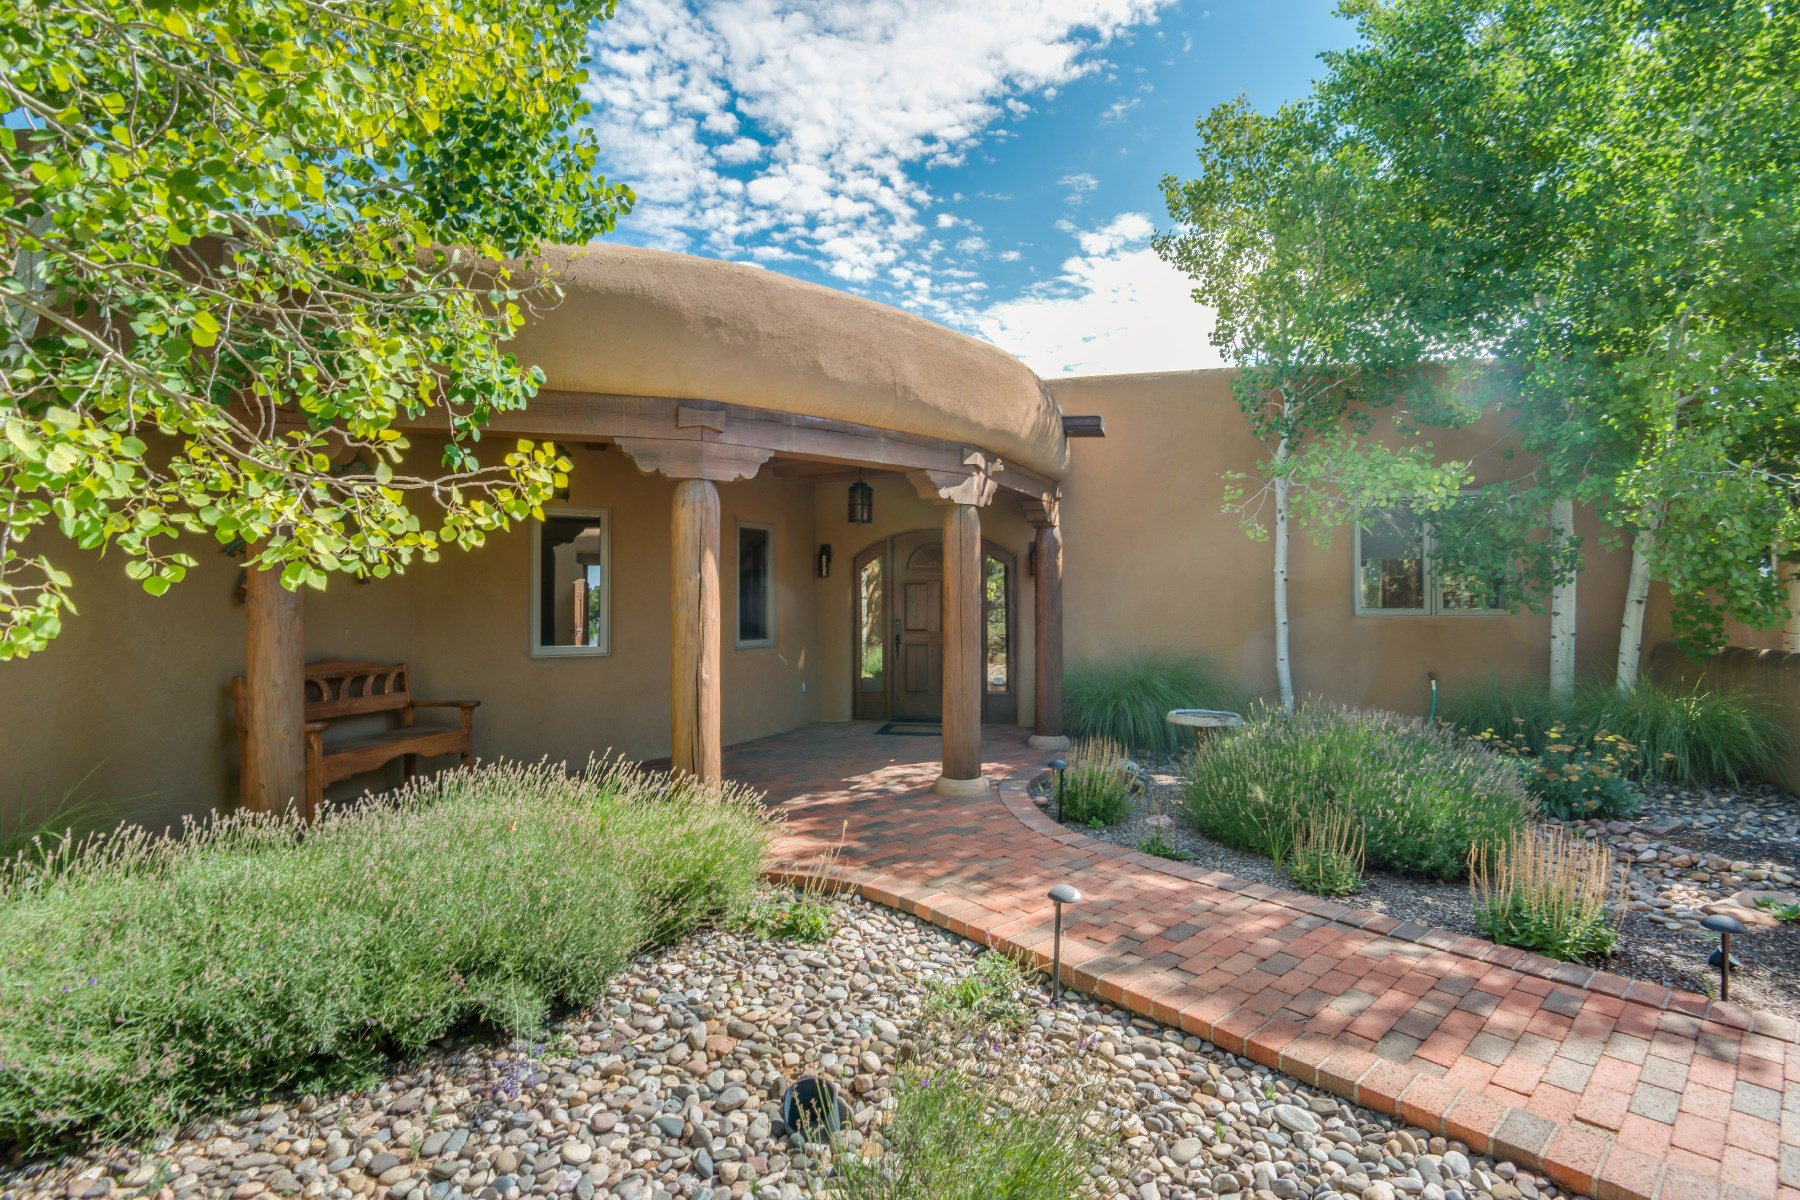 Single Family Home for Sale at 9 Sand Sage East 9 E Sand Sage Santa Fe, New Mexico, 87506 United States